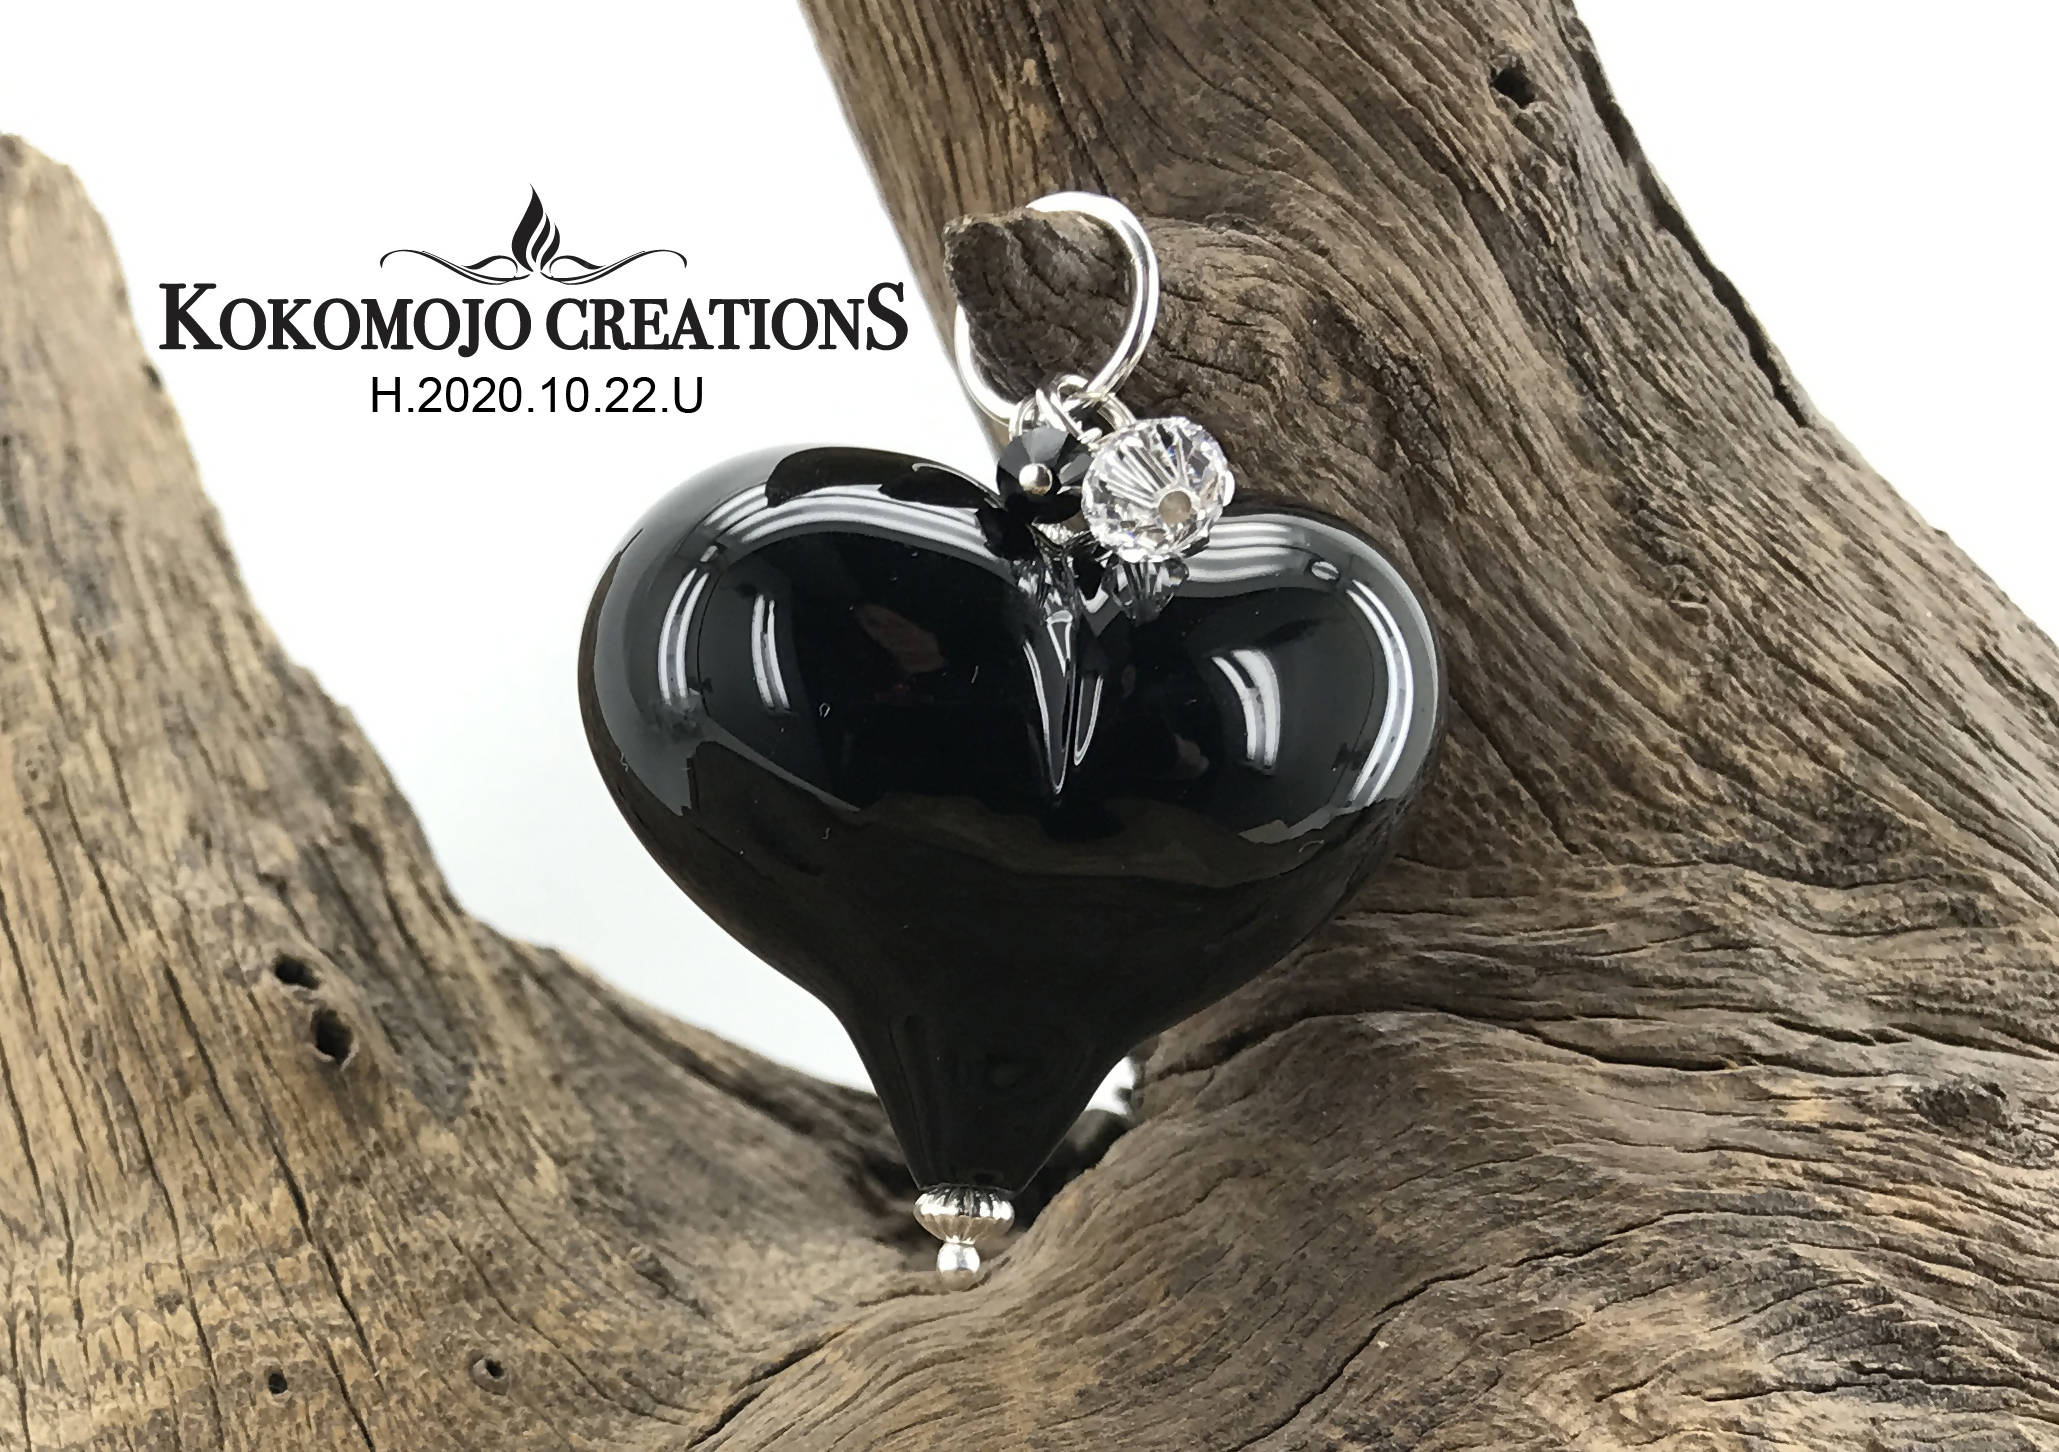 Handmade Lampwork Blown Glass and Sterling Silver Heart Pendant With Swarovski Crystals - H.2020.10.22.U